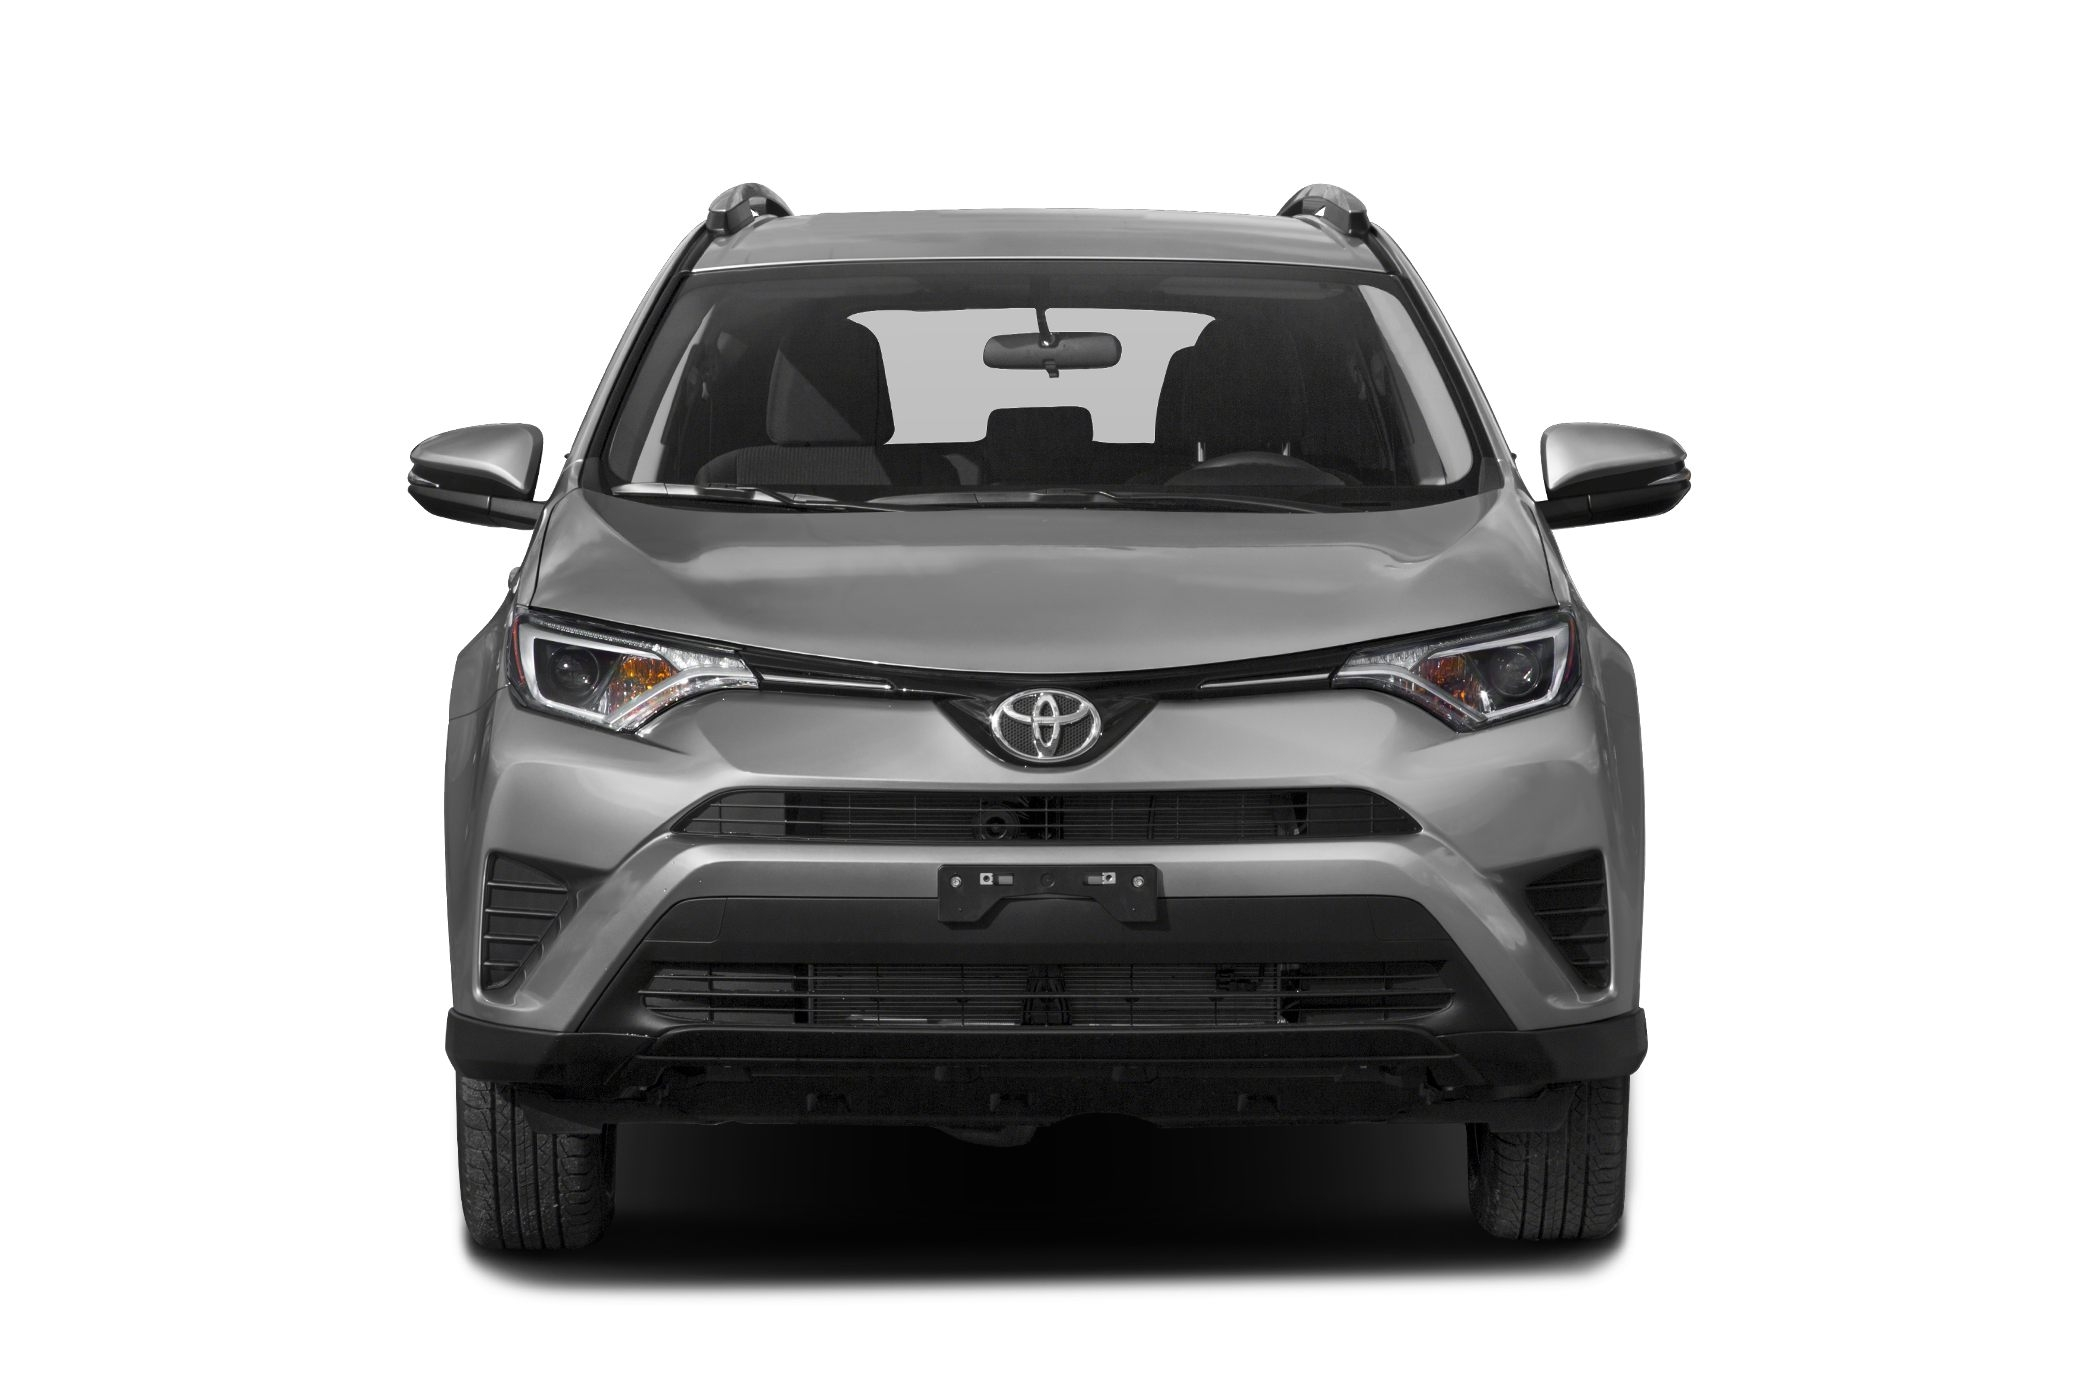 rav4 invoice price new 2016 toyota rav4 price photos reviews safety ratings 2100 X 1386